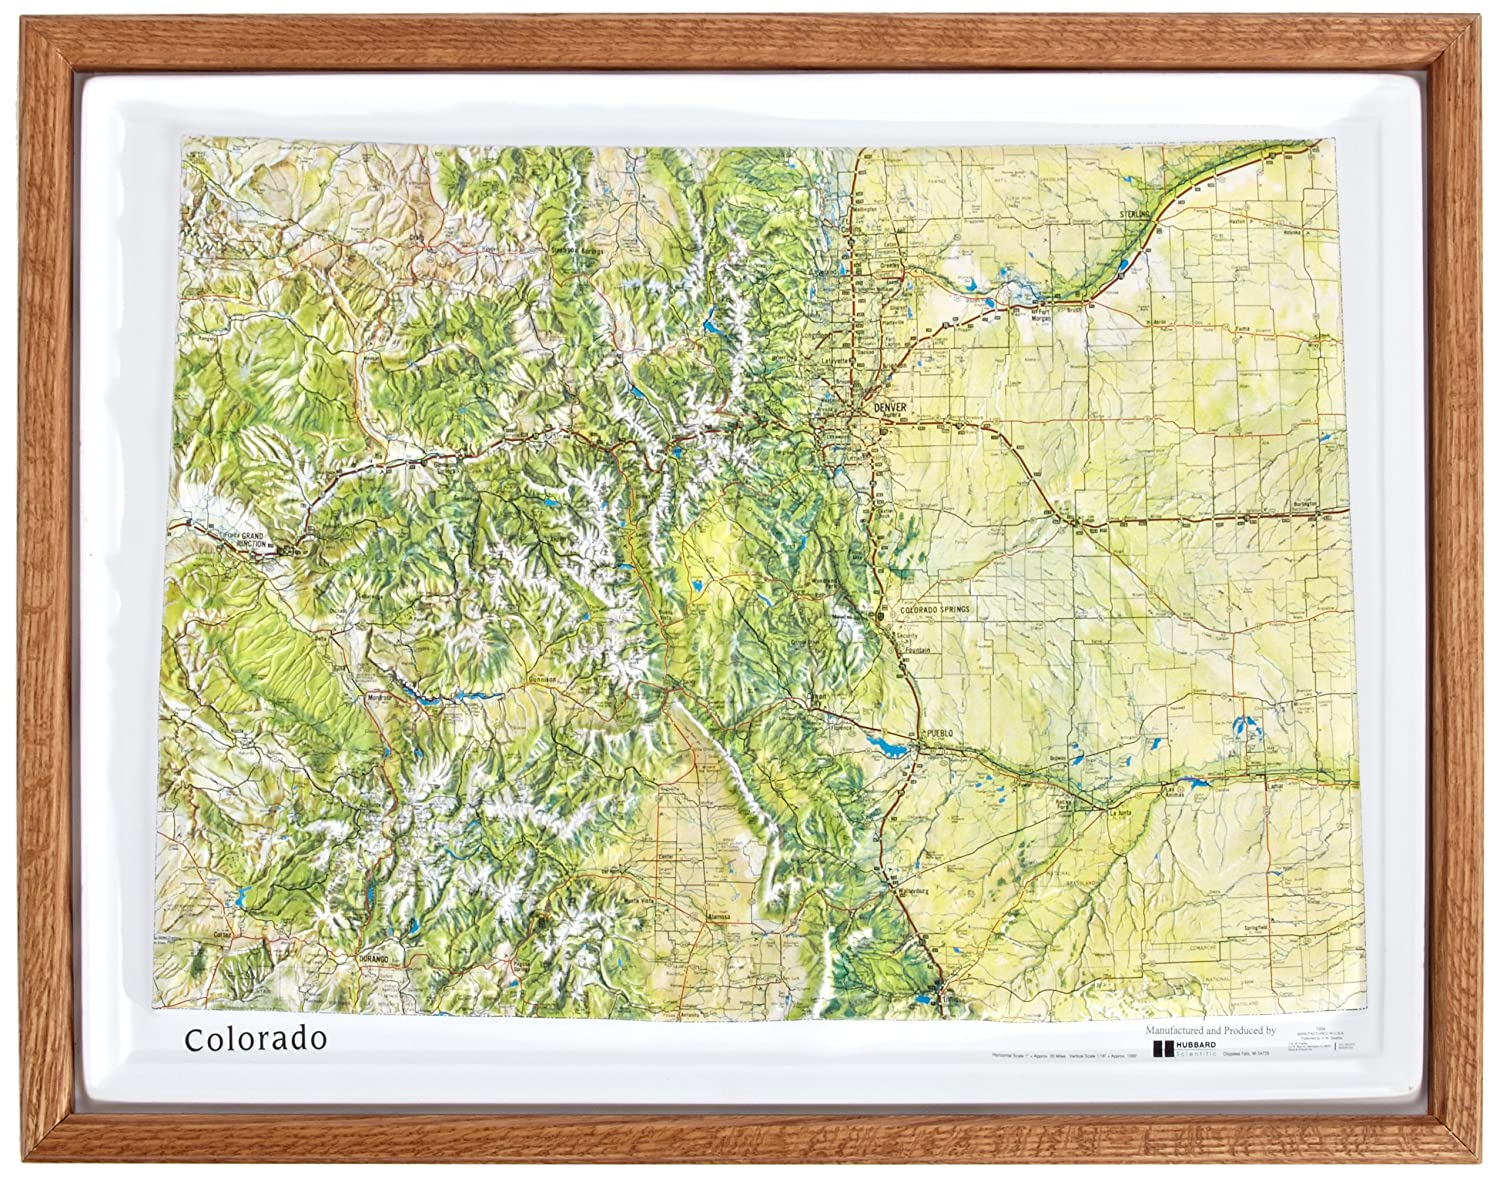 American Educational Colorado Natural Color Relief Map with Oak Wood Frame, 17-3/4' Length x 22-3/4' Width 17-3/4 Length x 22-3/4 Width K-CO2217-FW